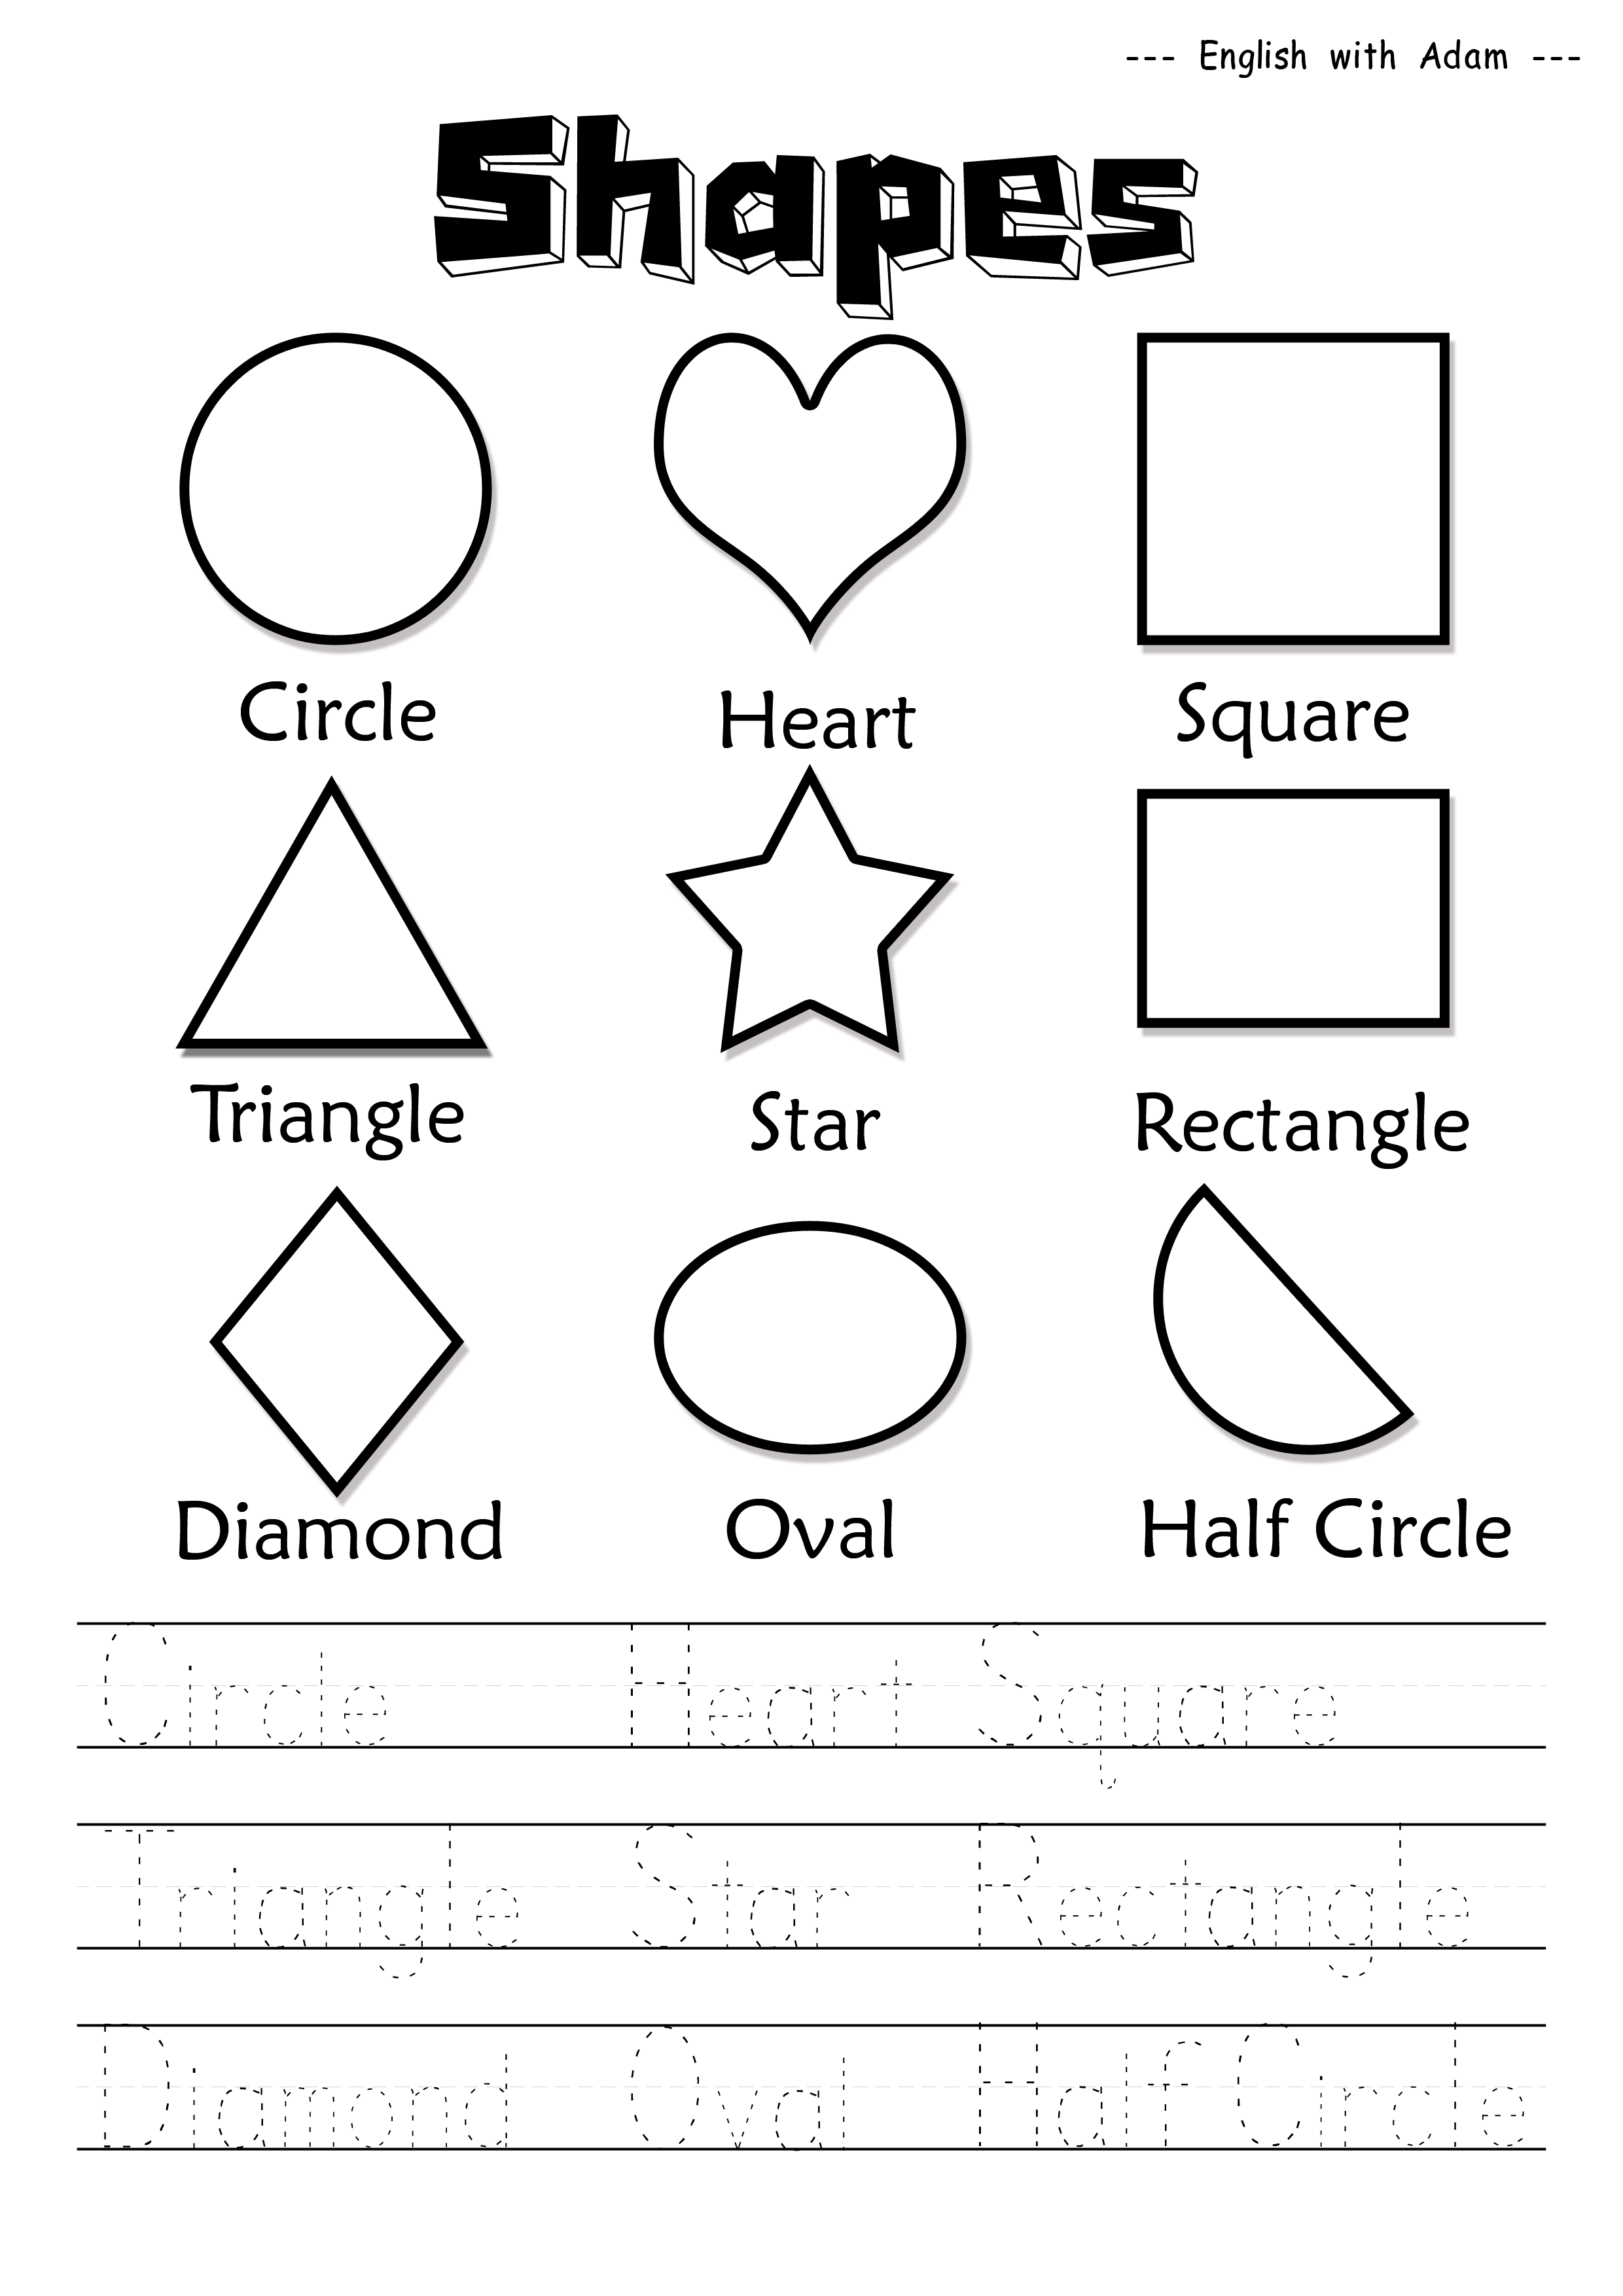 shapes done english worksheets for kids english worksheets for kindergarten. Black Bedroom Furniture Sets. Home Design Ideas